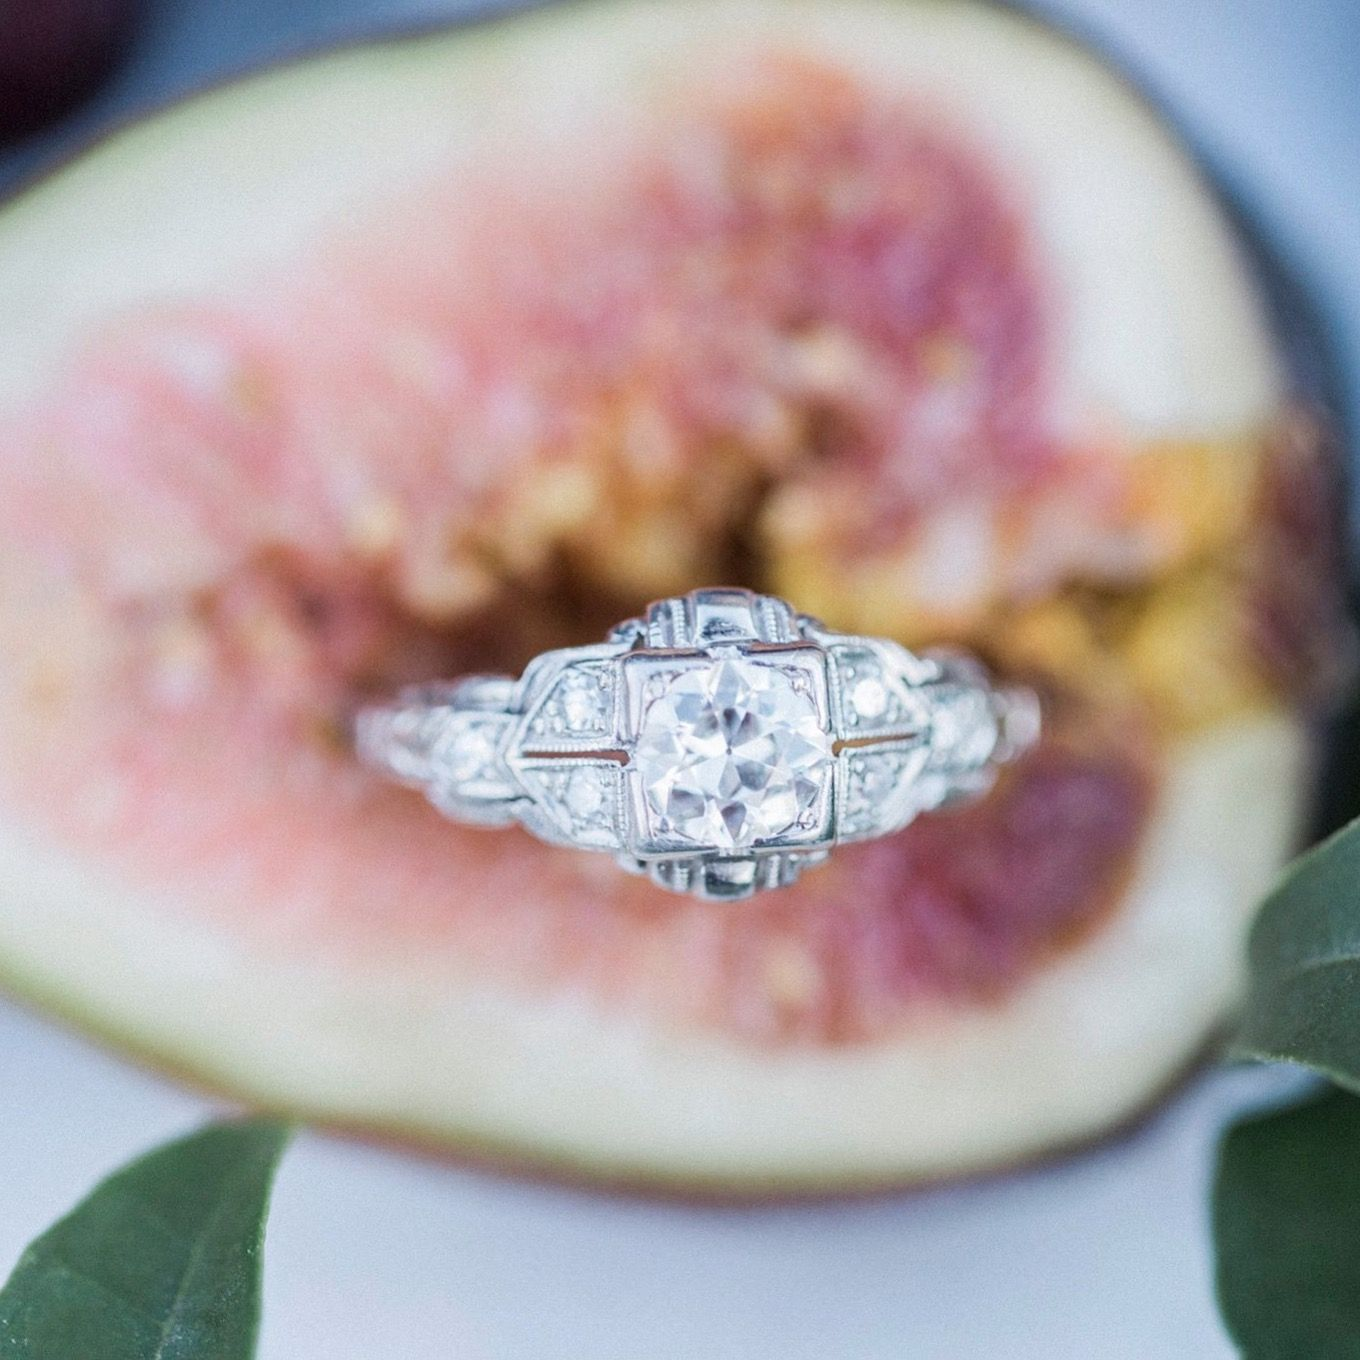 Diamonds & Figs | Gorgeous Art Deco engagement ring photographed by ...